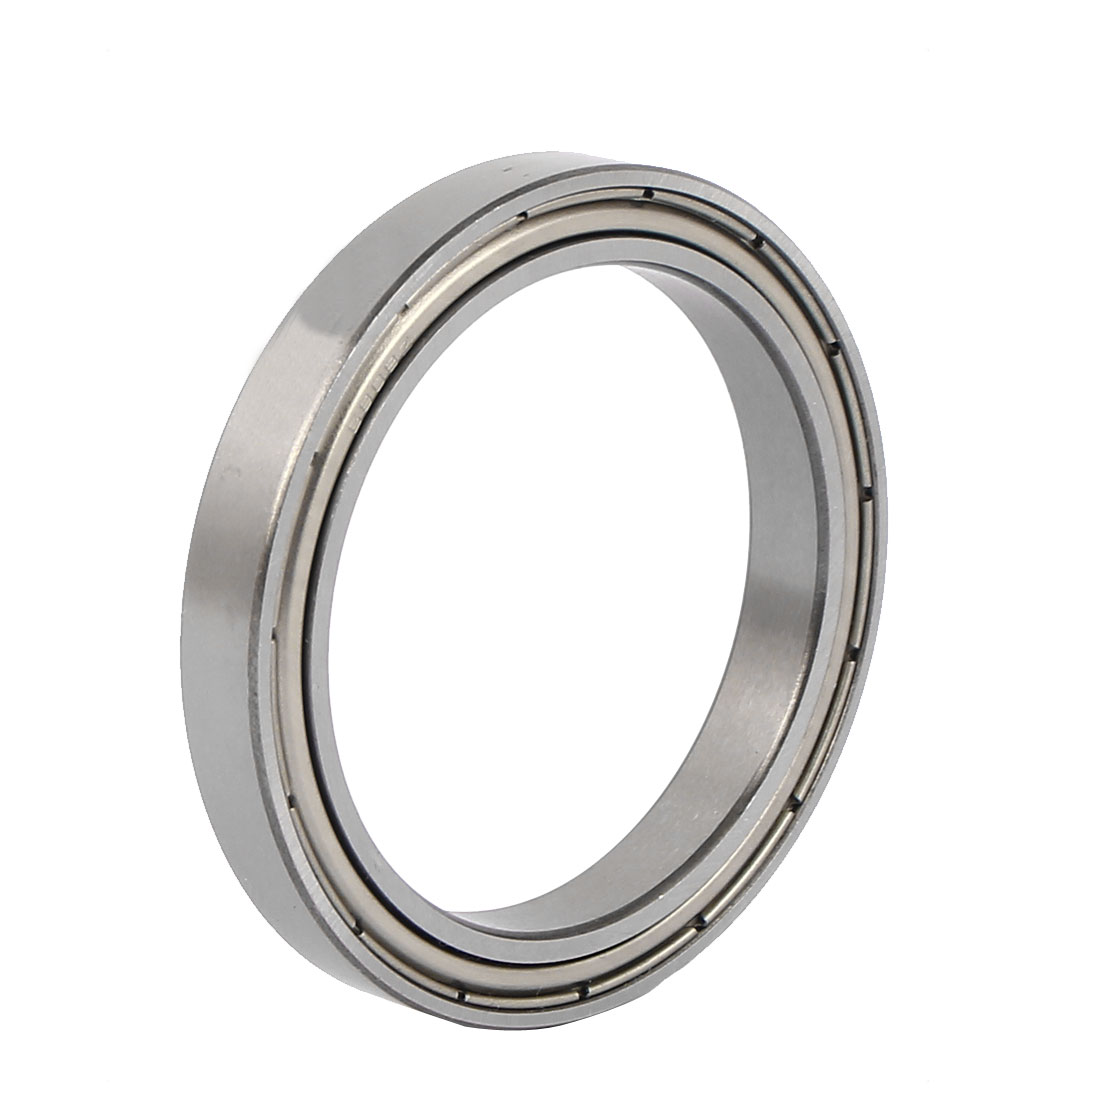 ZZ6808 40mm Inside Dia 52mm Outside Dia Double Sealed Deep Groove Ball Bearing